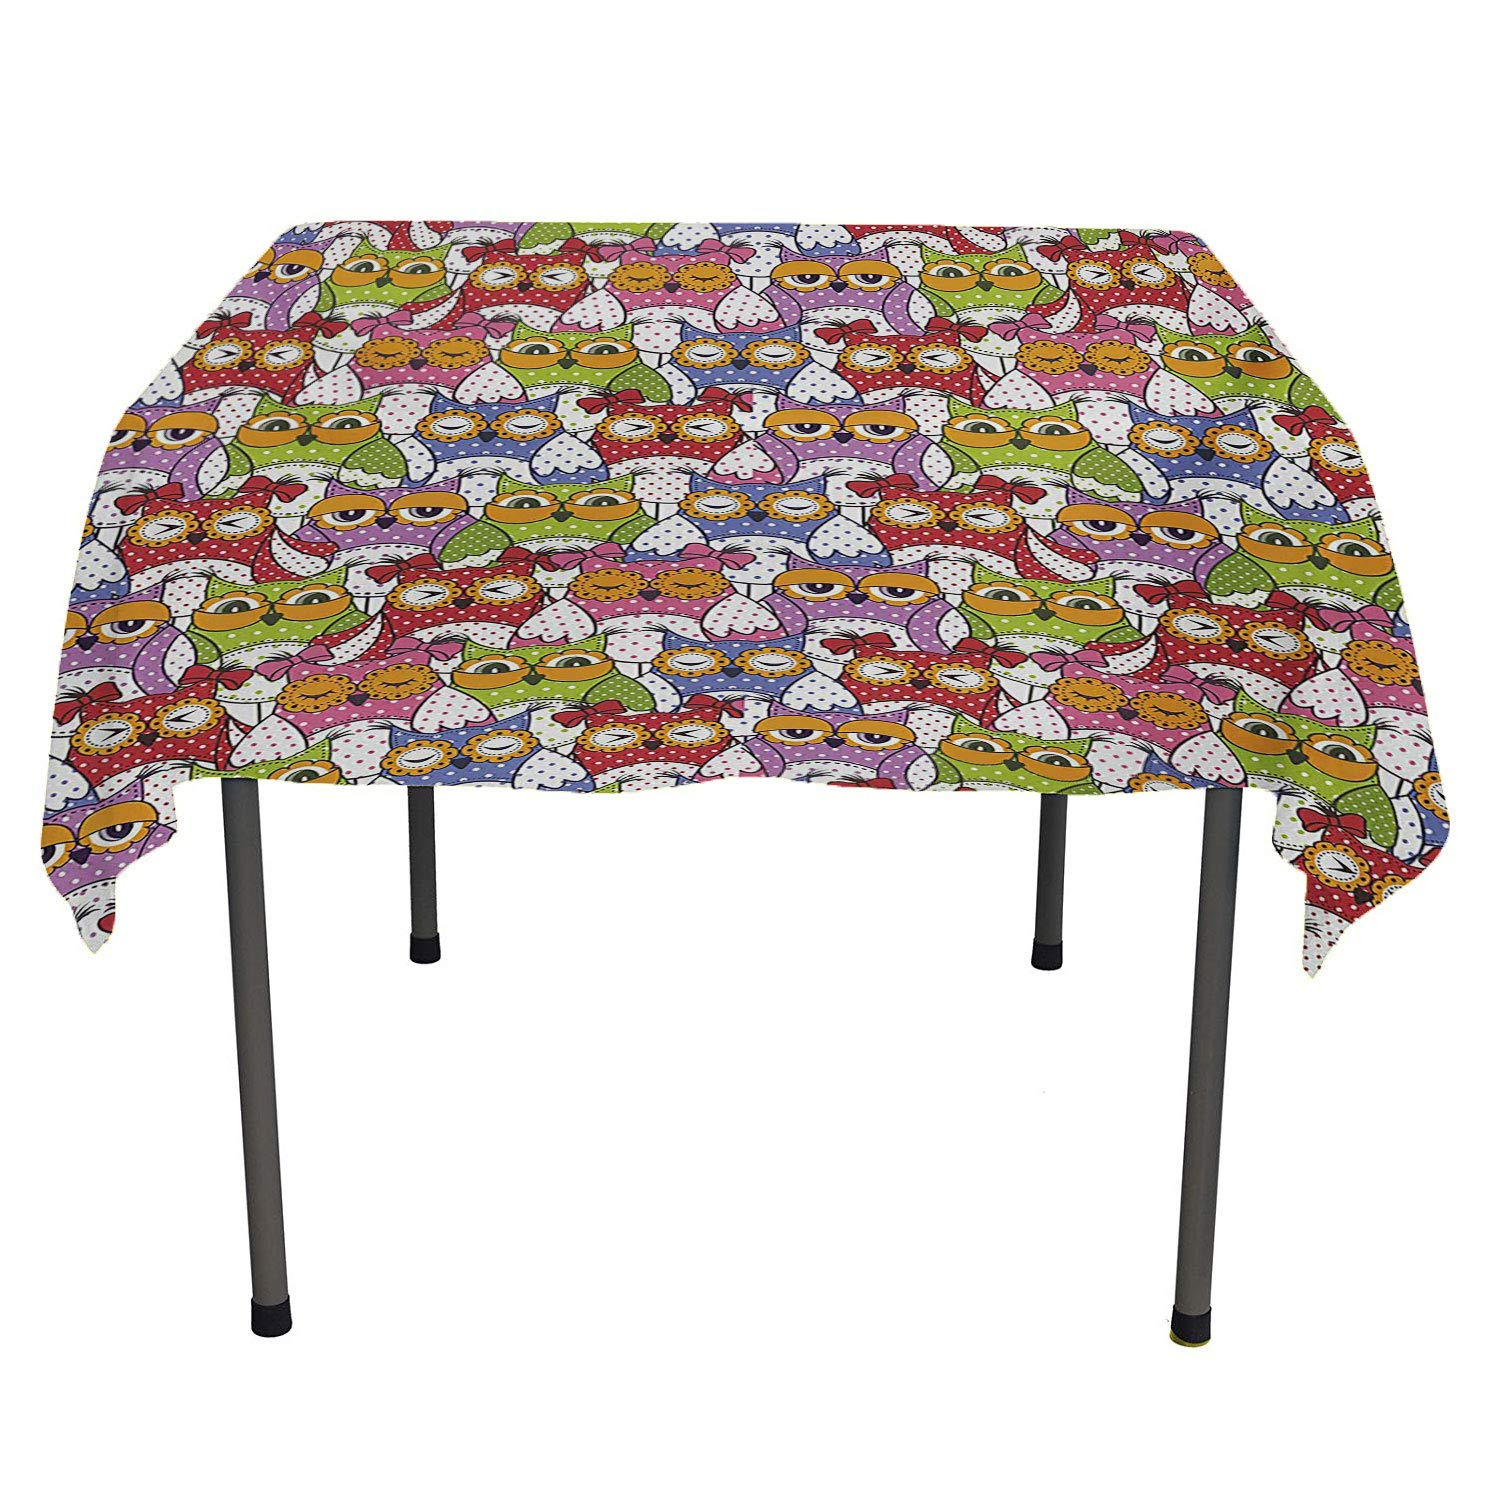 All of better Owl Tablecloth Durable Ornate Owl Crowd with Different Sights and Polka Dots Like Matryoshka Dolls Fun Retro Theme Multi Waterproof tablecloths Spring/Summer/Party/Picnic 50 by 80 by All of better